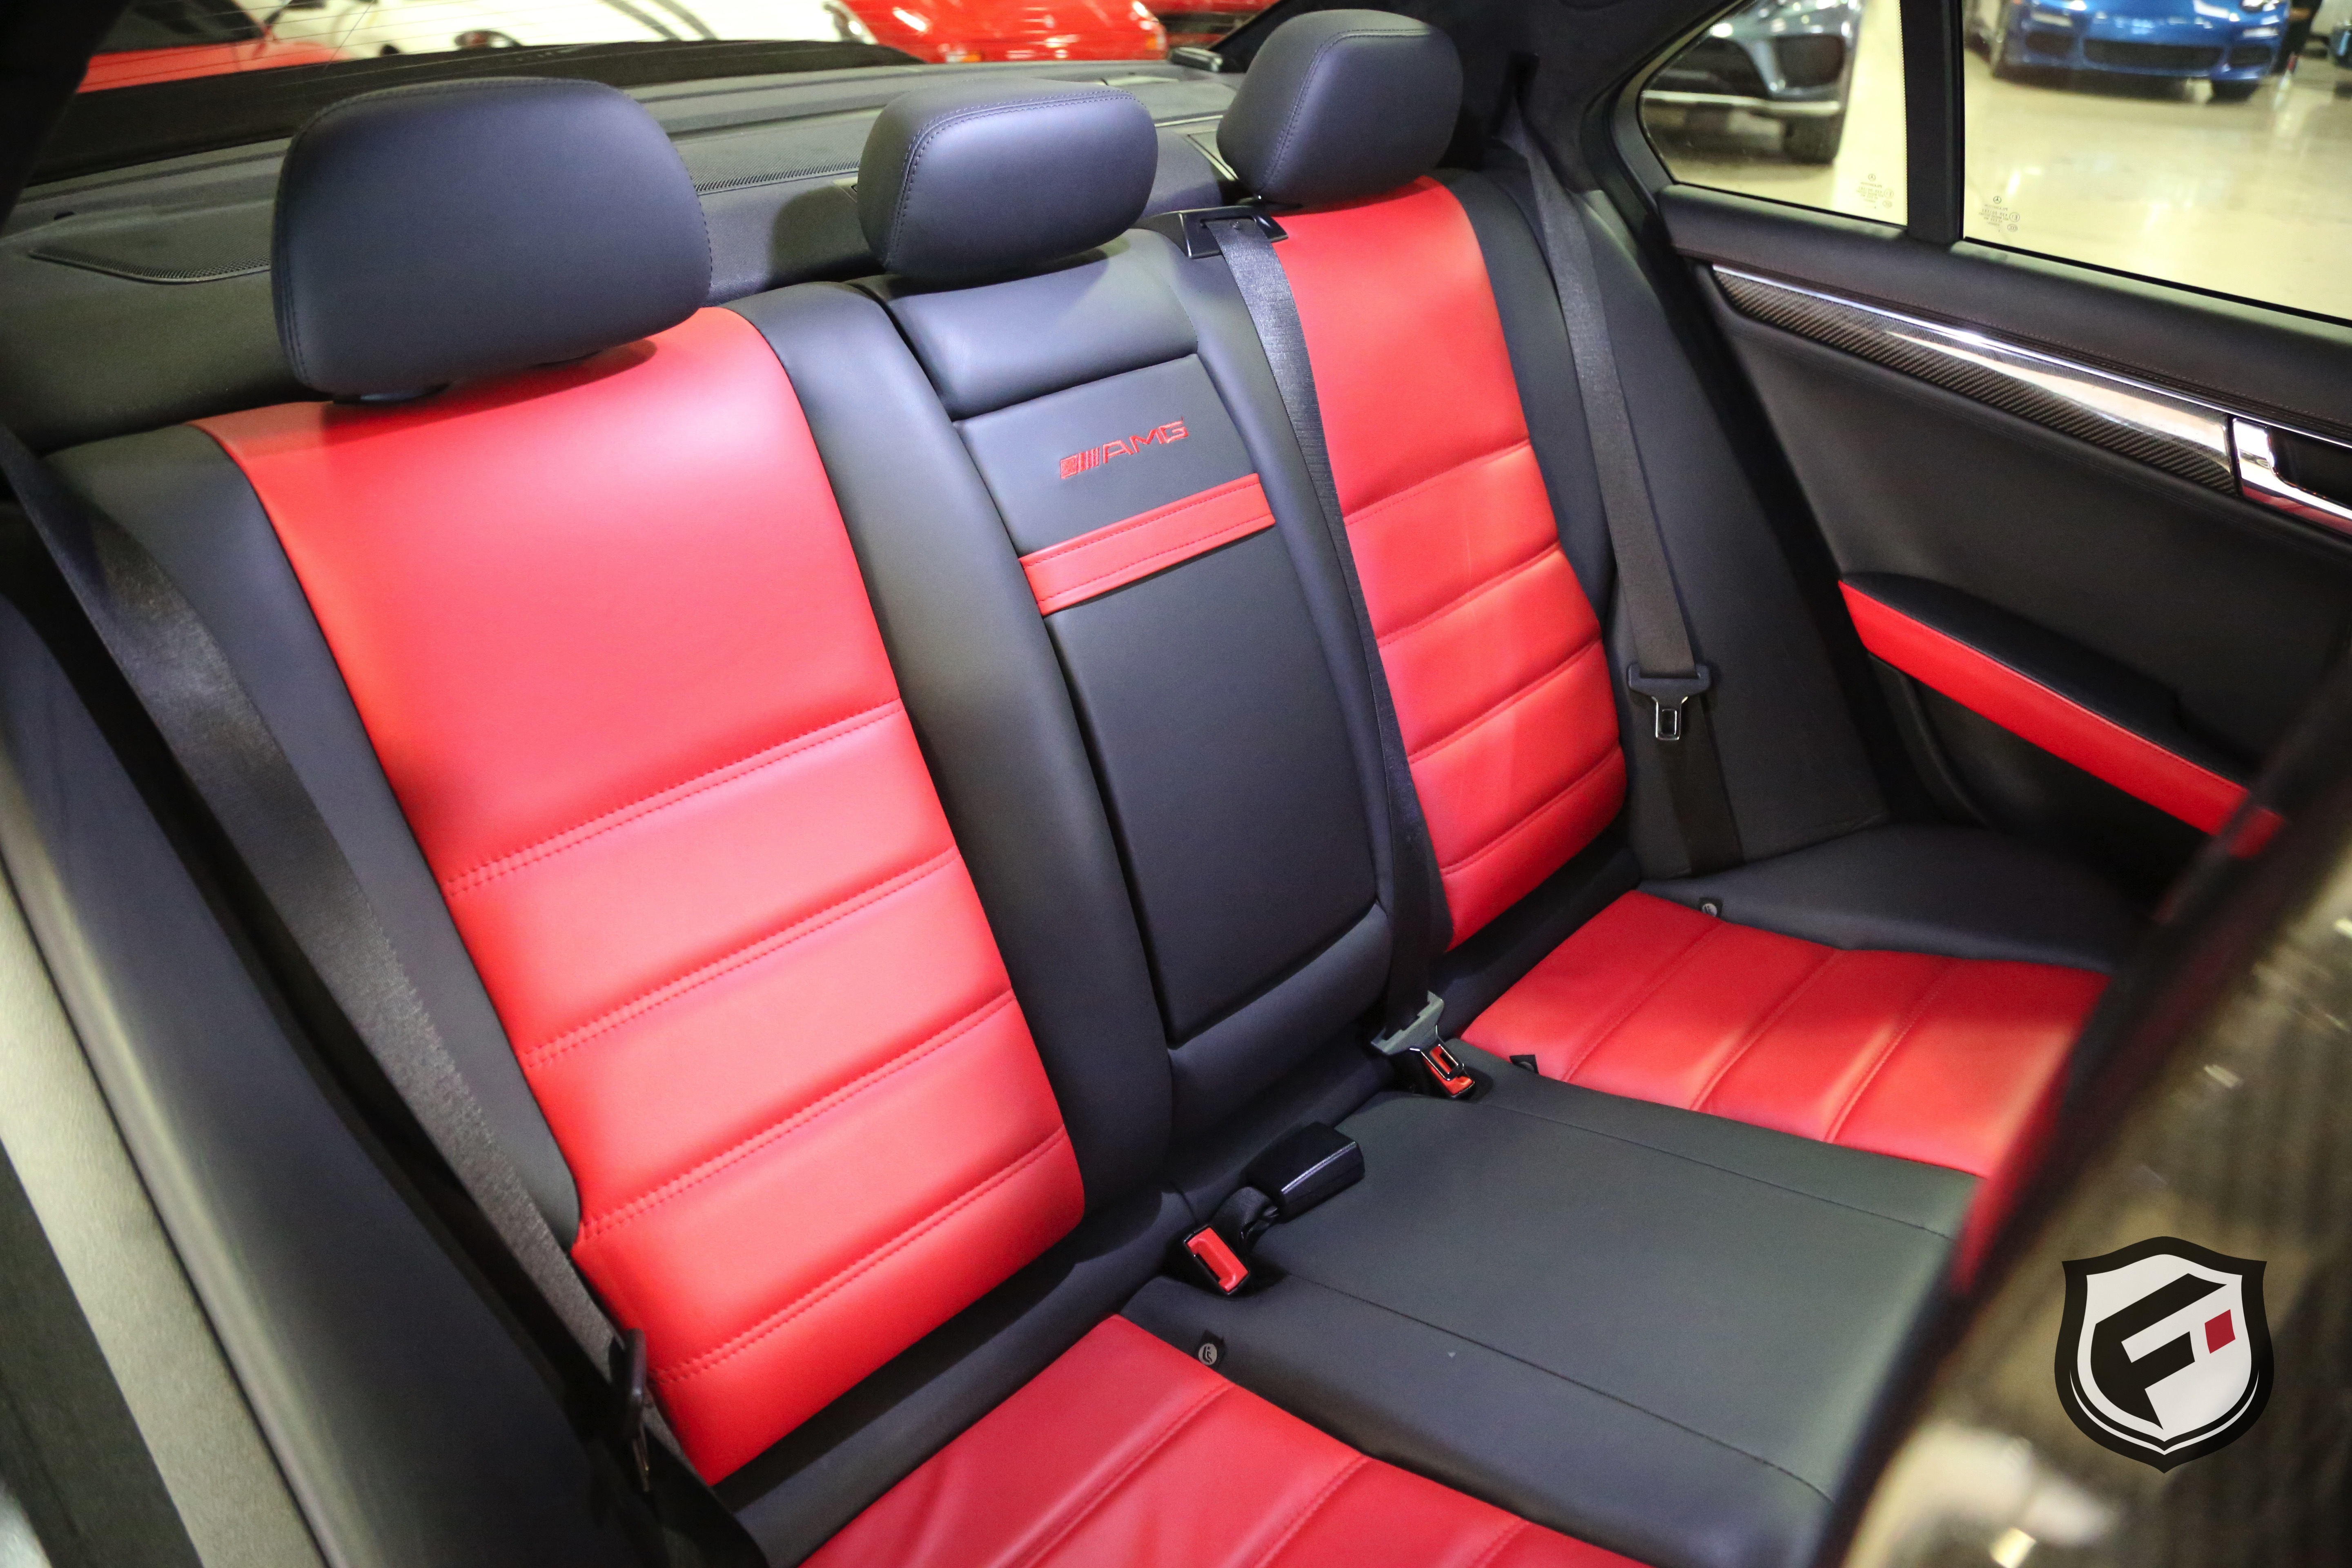 benz bangalore leather sofas car img covers karlsson seat details product mercedes in recliners custom